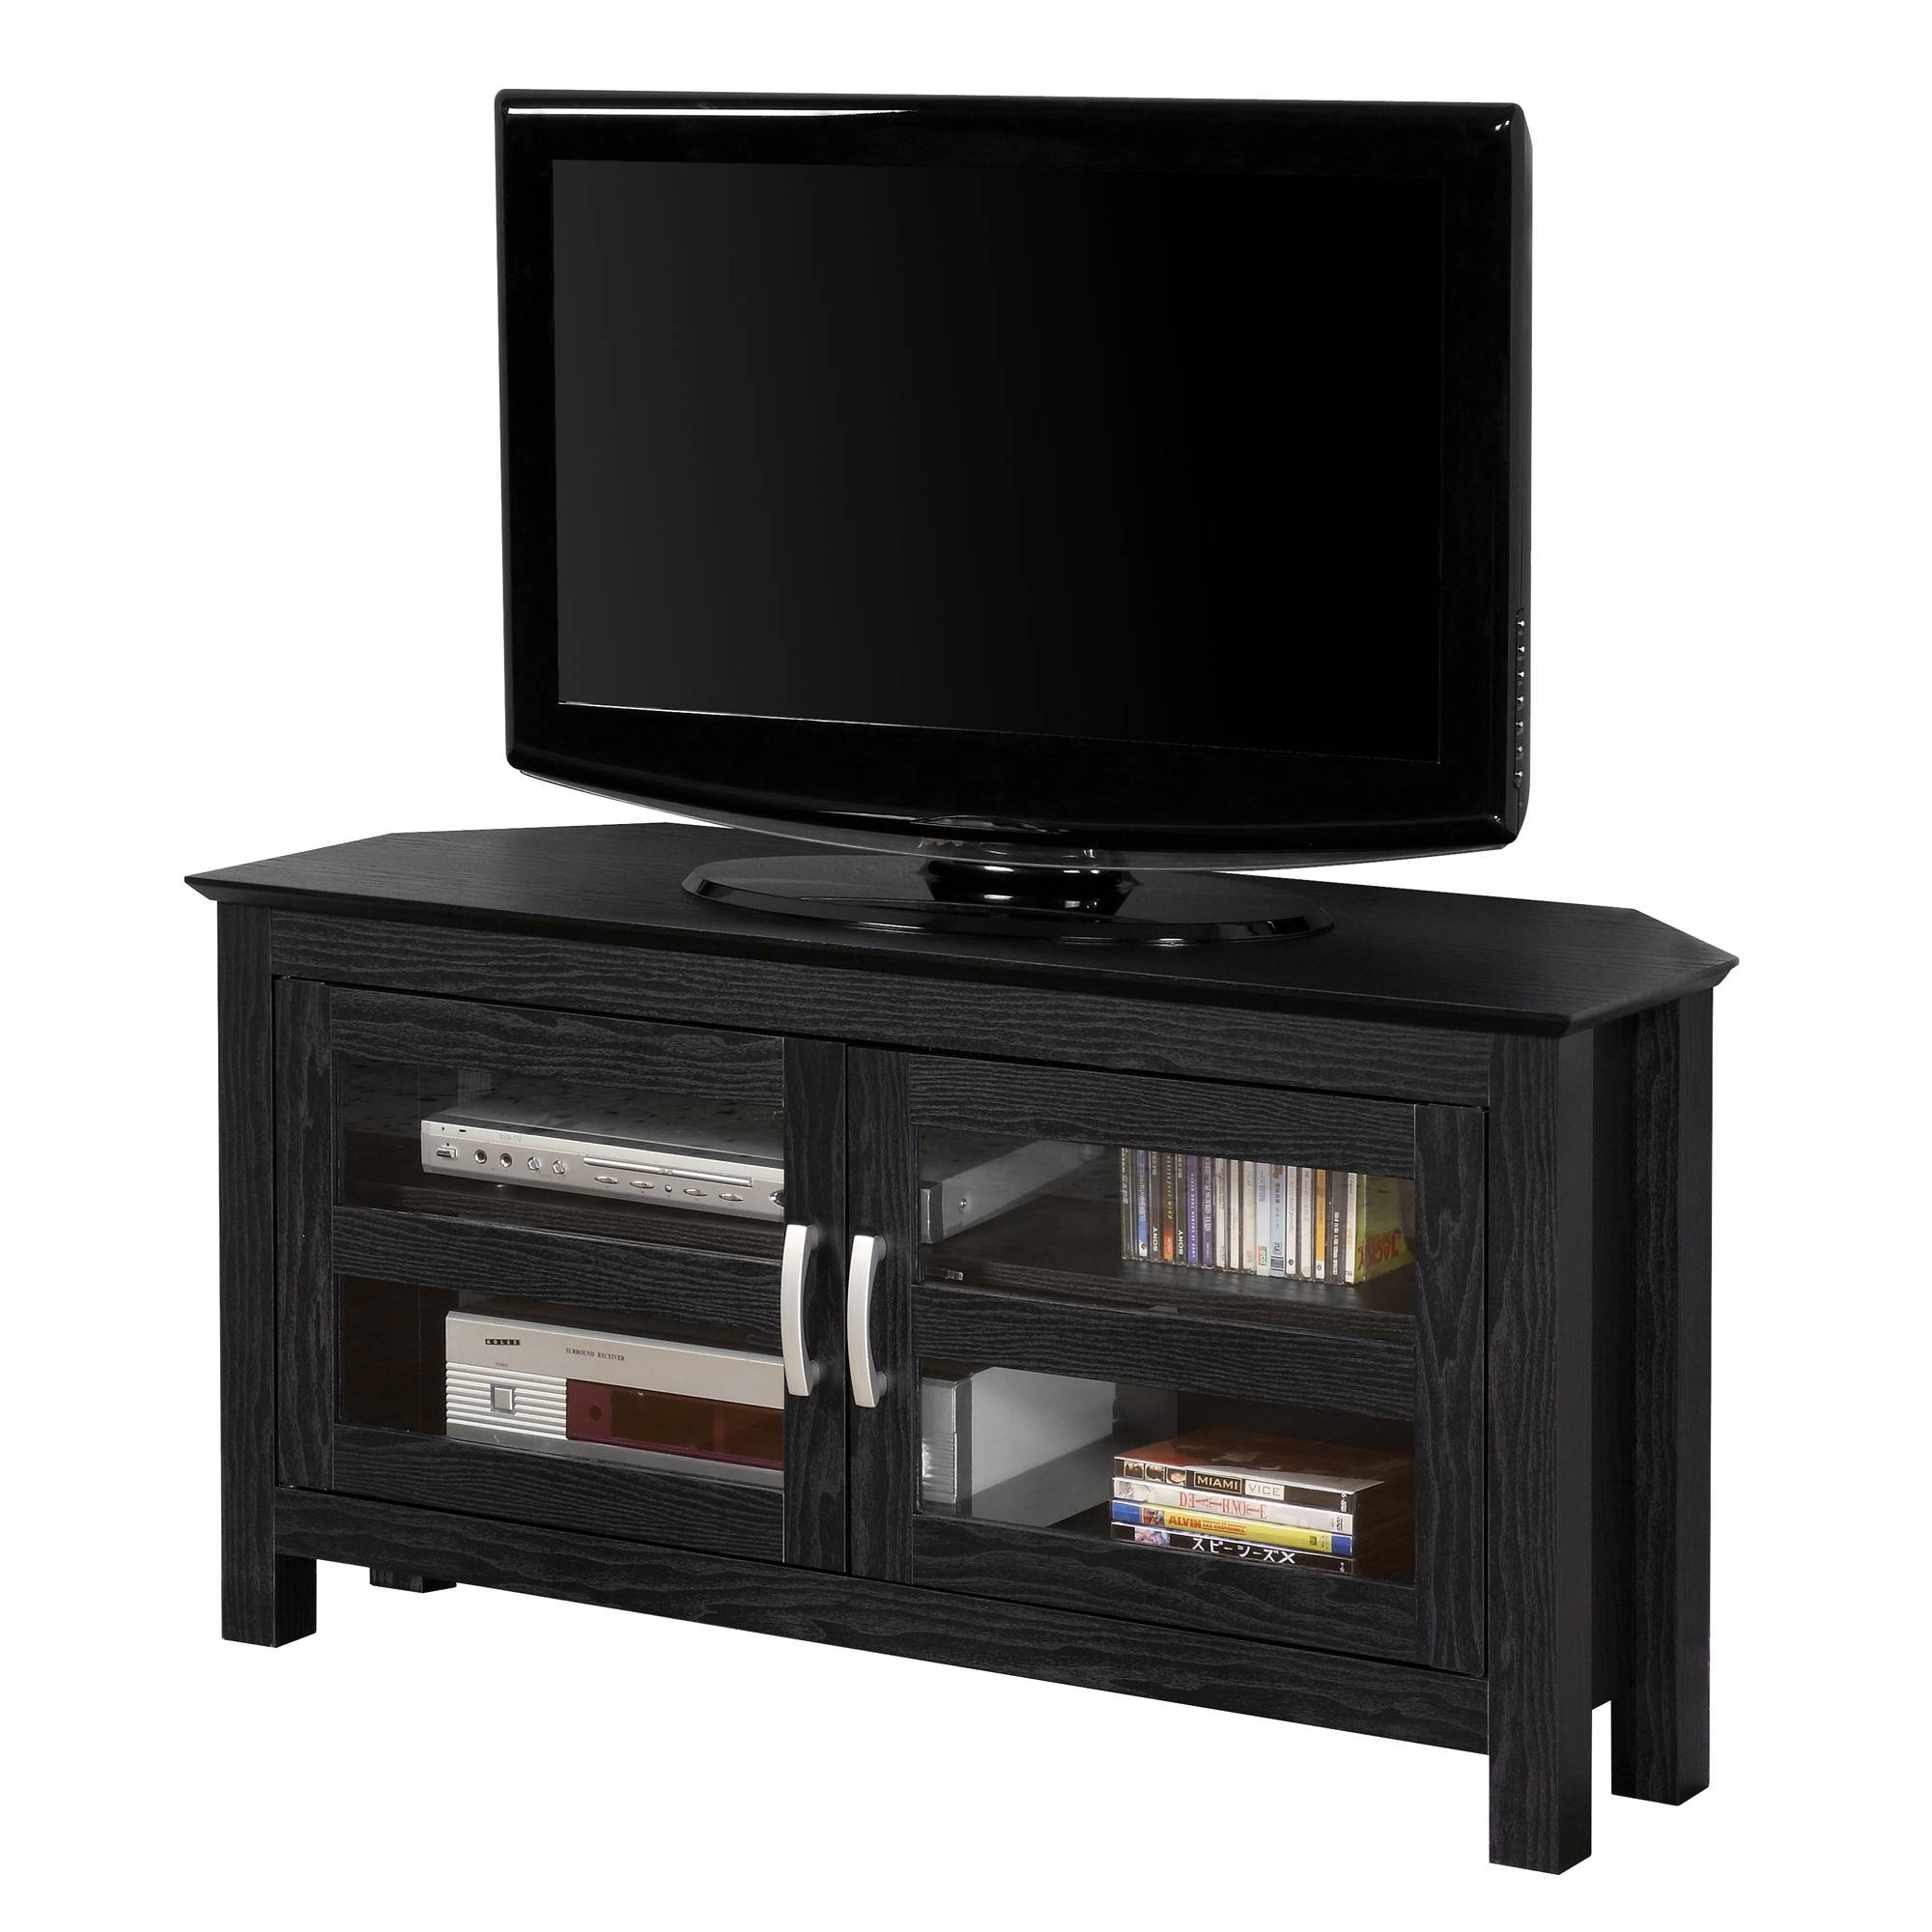 Wood Entertainment Center Corner Tv Stand Stereo Cabinet 44 inside Black Wood Corner Tv Stands (Image 15 of 15)